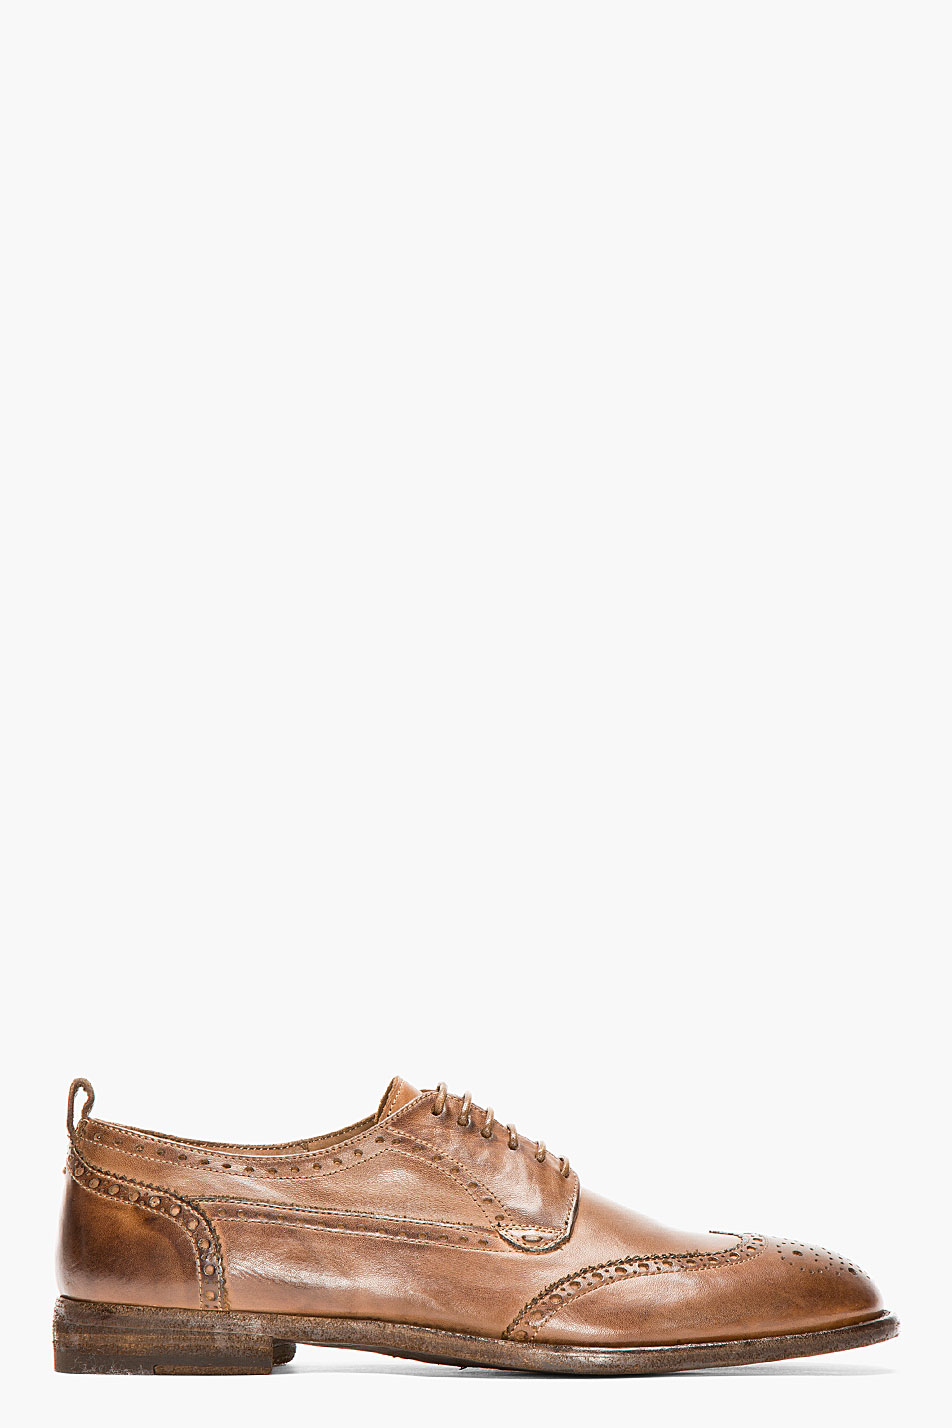 Alexander mcqueen brown leather classic shortwing brogues